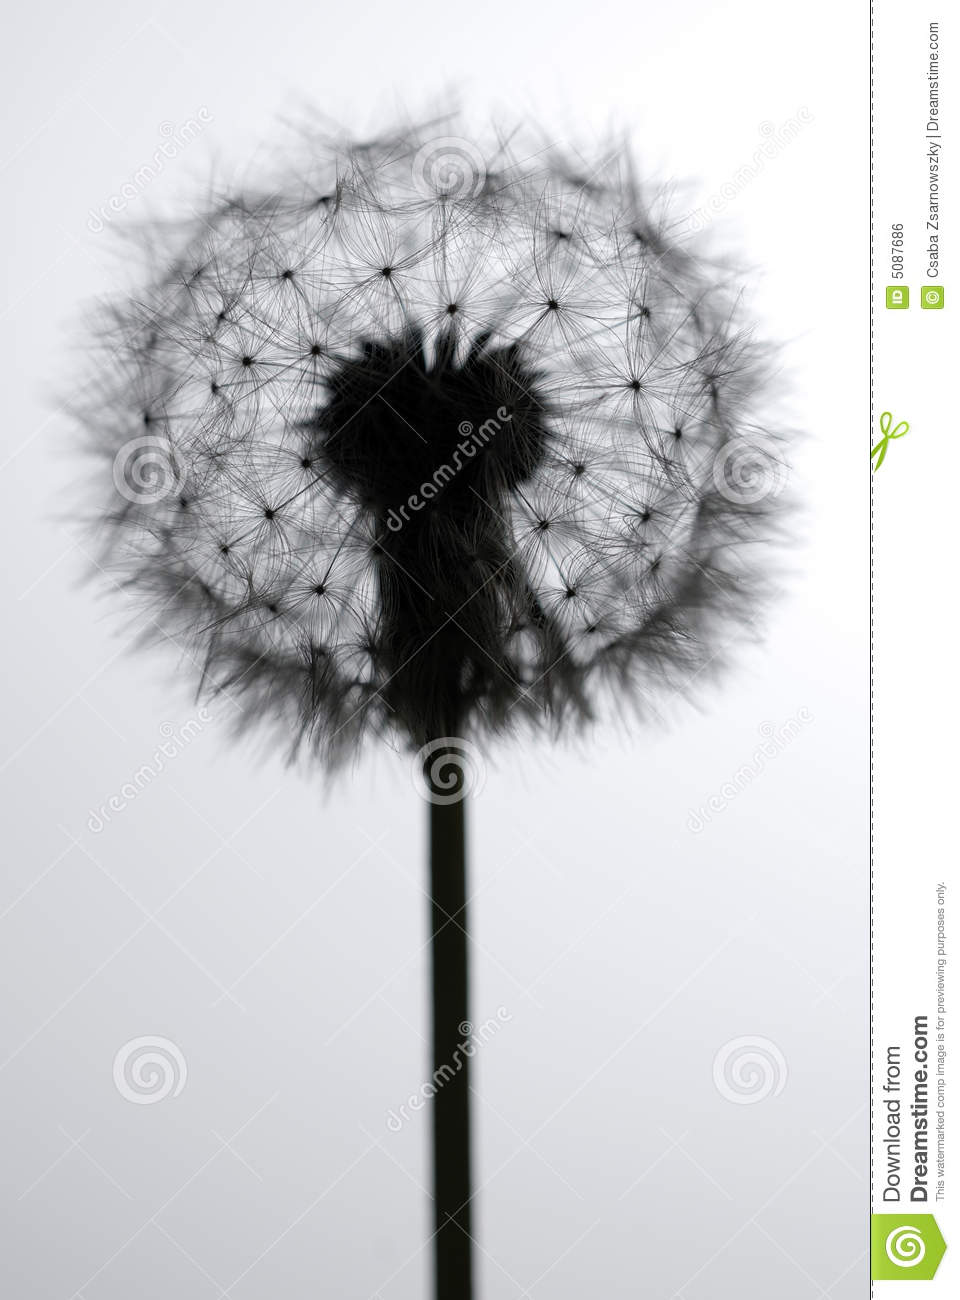 blow ball stock photo image of nature sensitive delicate 5087686